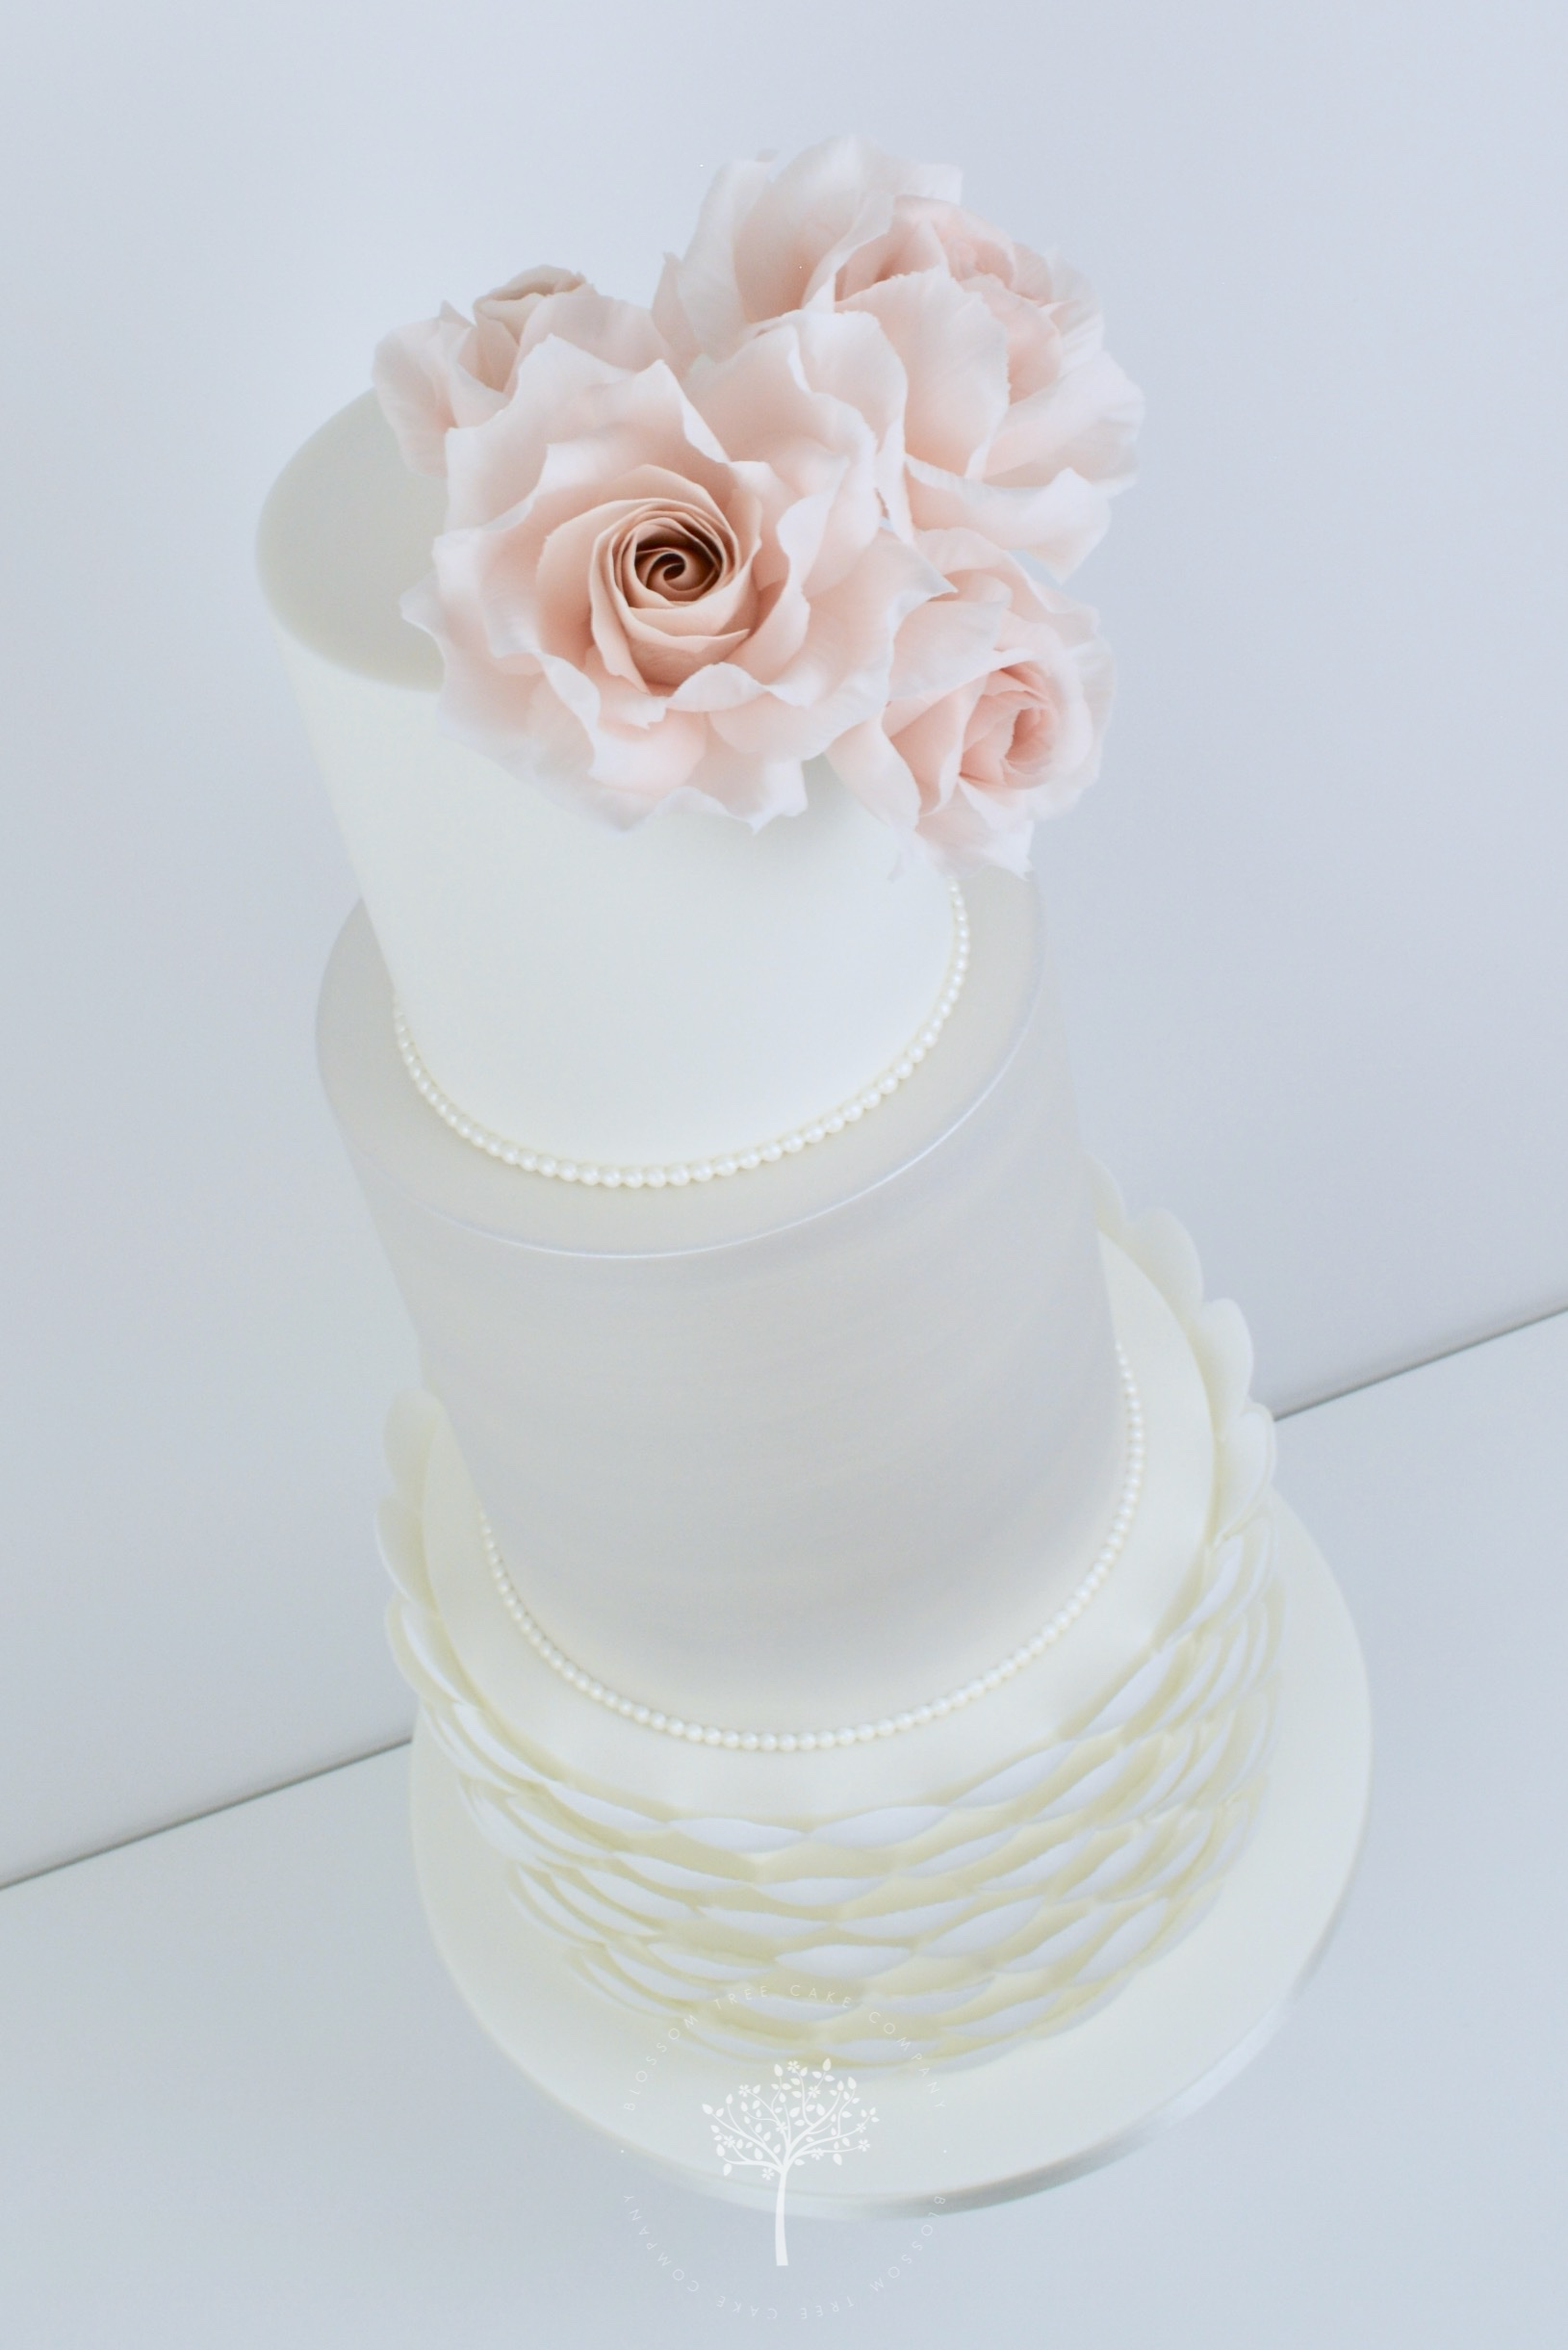 Pearlescent and Blush Petal Shells wedding cake by Blossom Tree Cake Company Harrogate North Yorkshire - angle.jpg